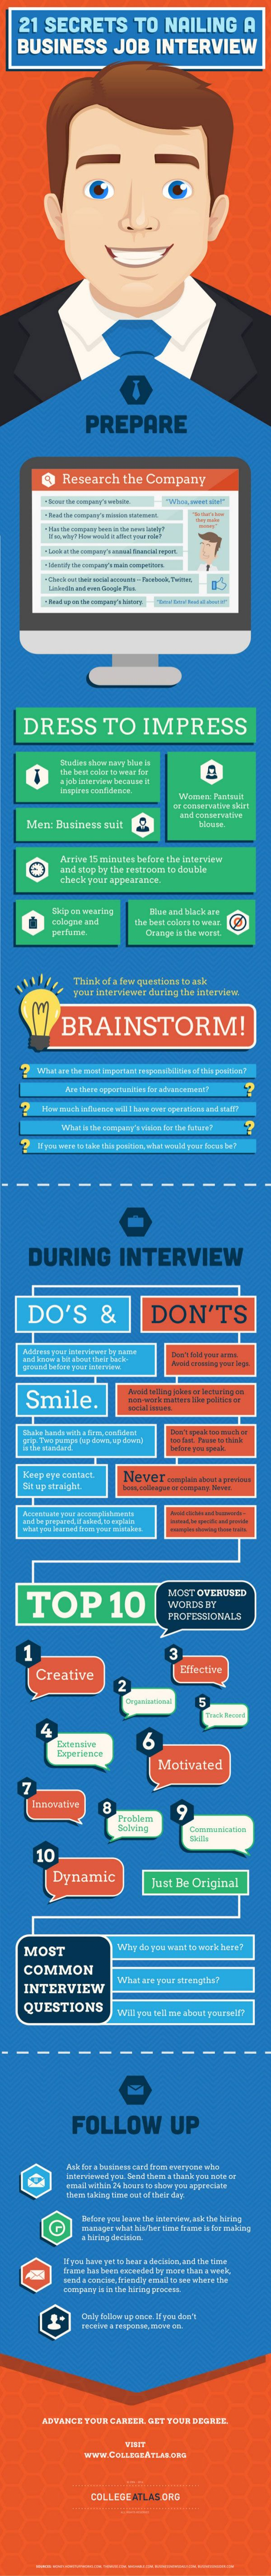 best images about staffing recruiting infographics on 17 best images about staffing recruiting infographics personal branding new job and body language